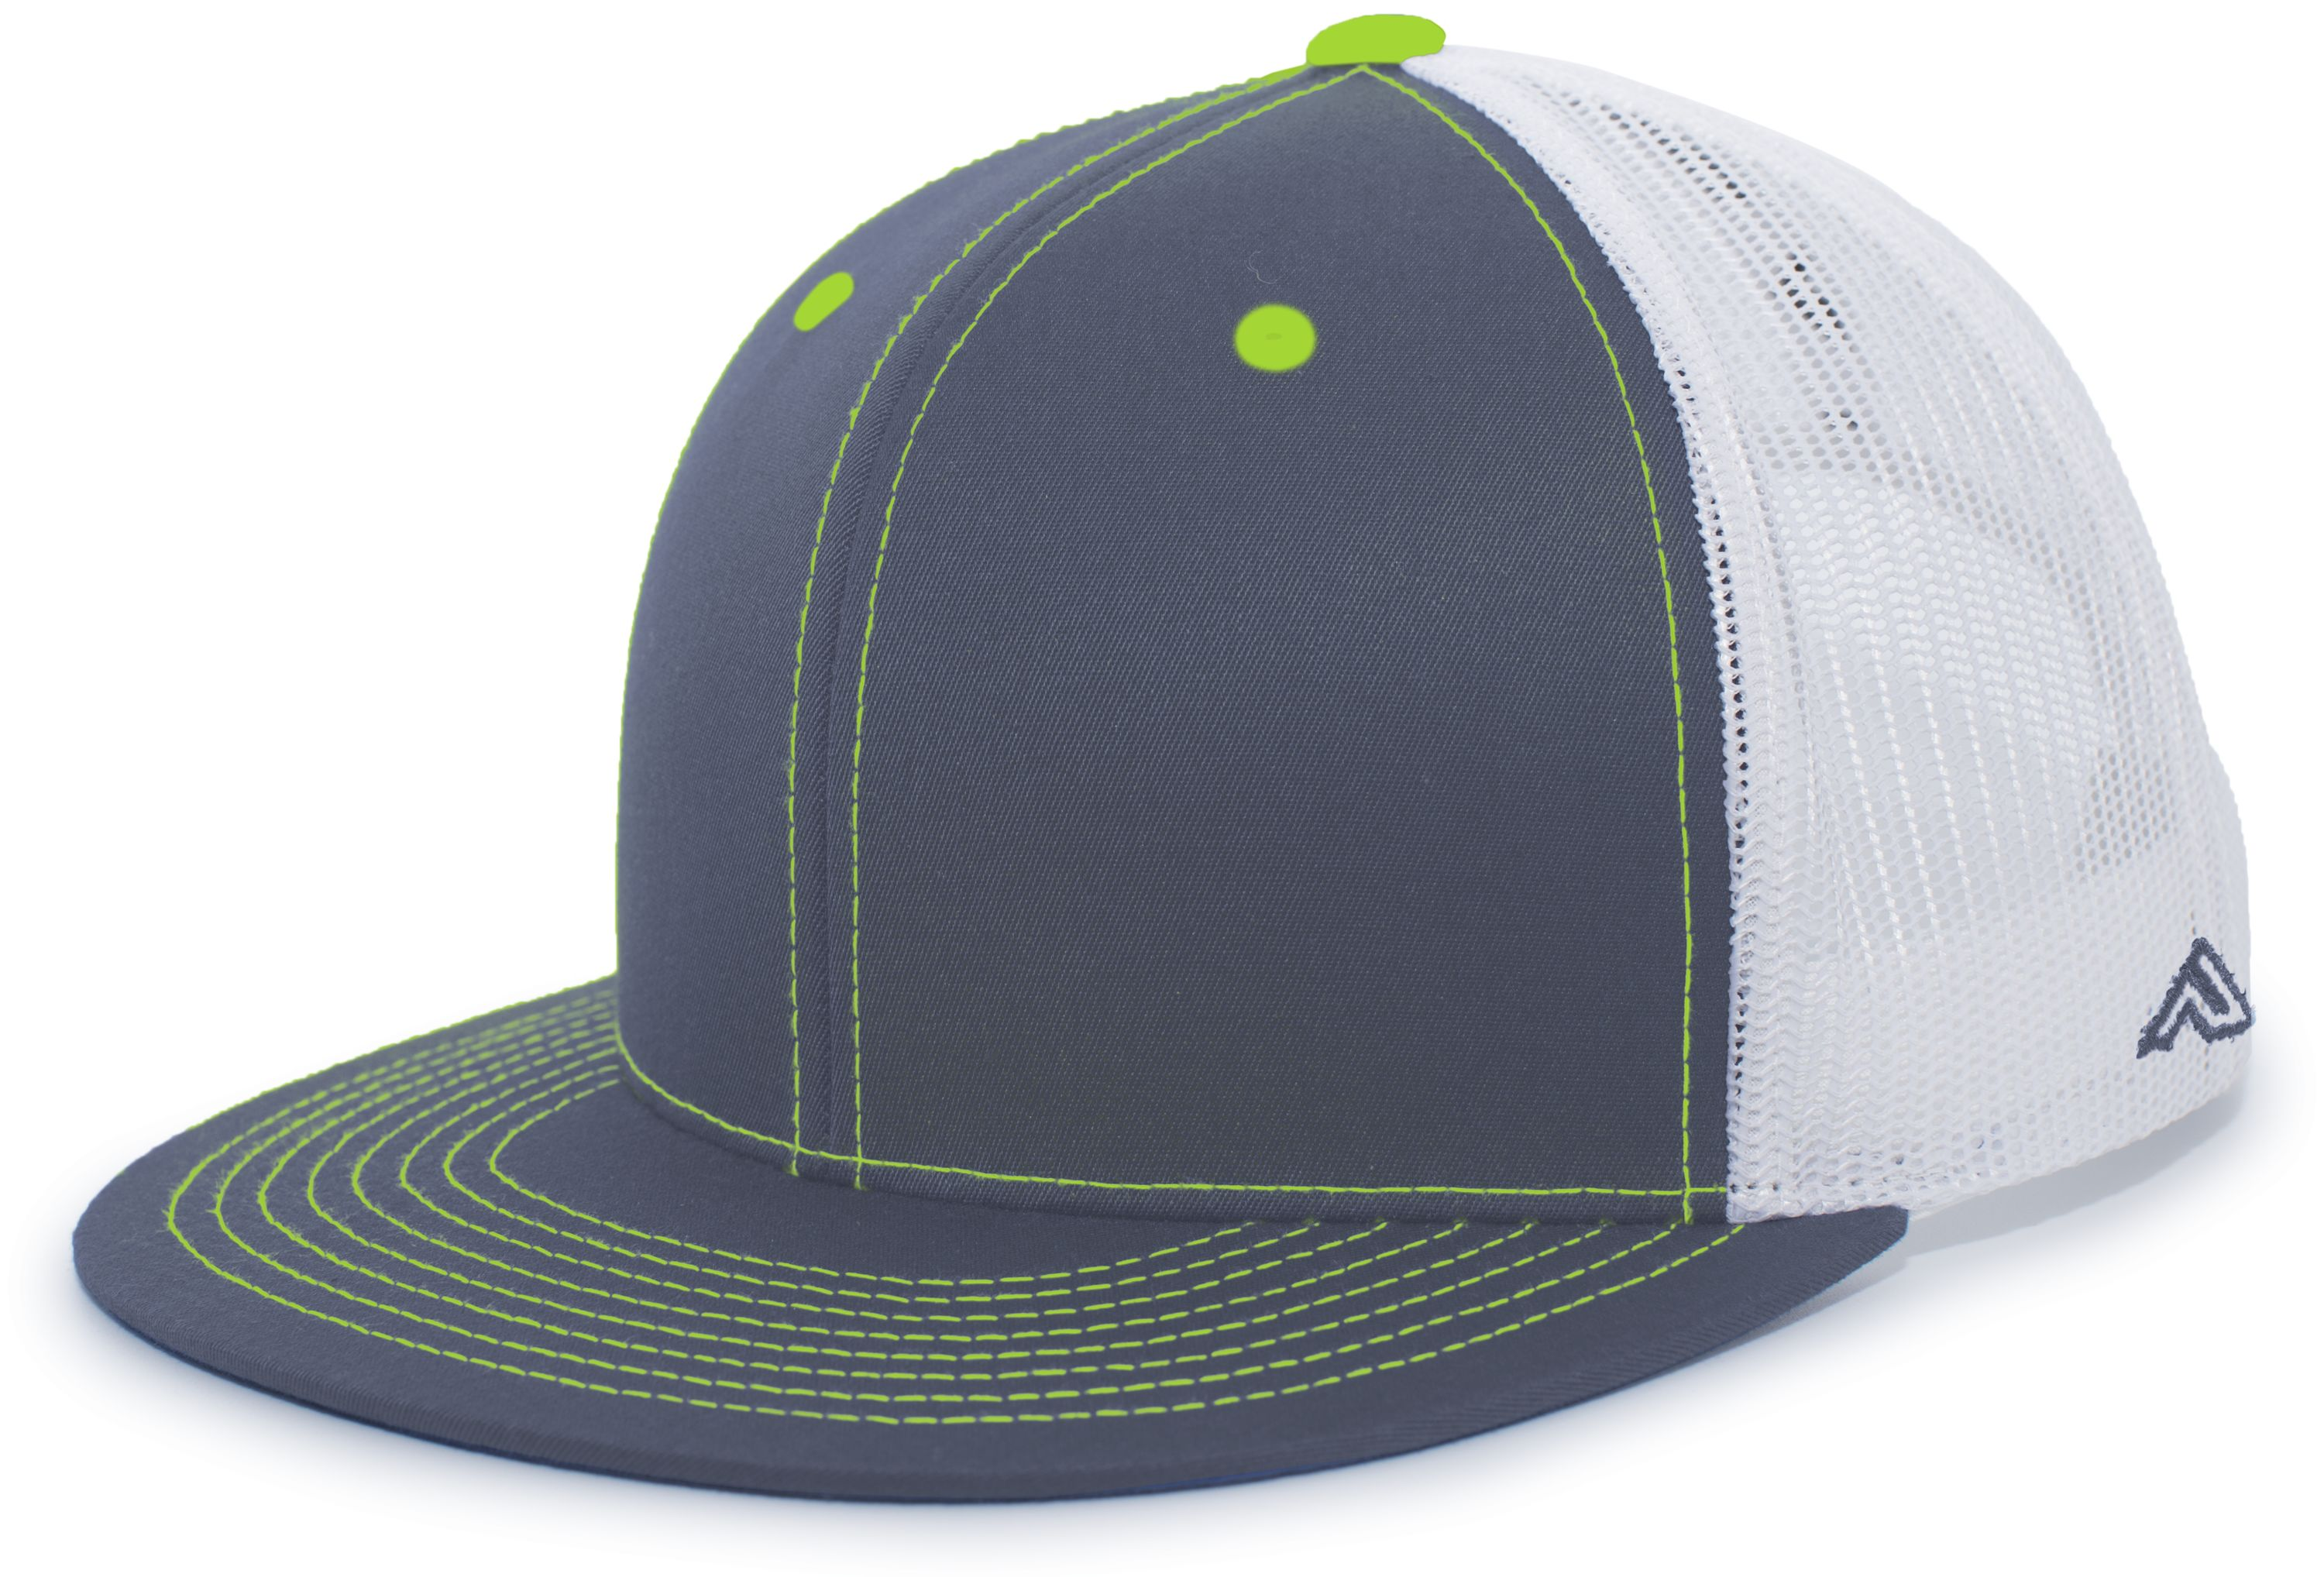 D-Series Trucker Snapback Cap - GRAPHITE/WHITE/NEON GREEN